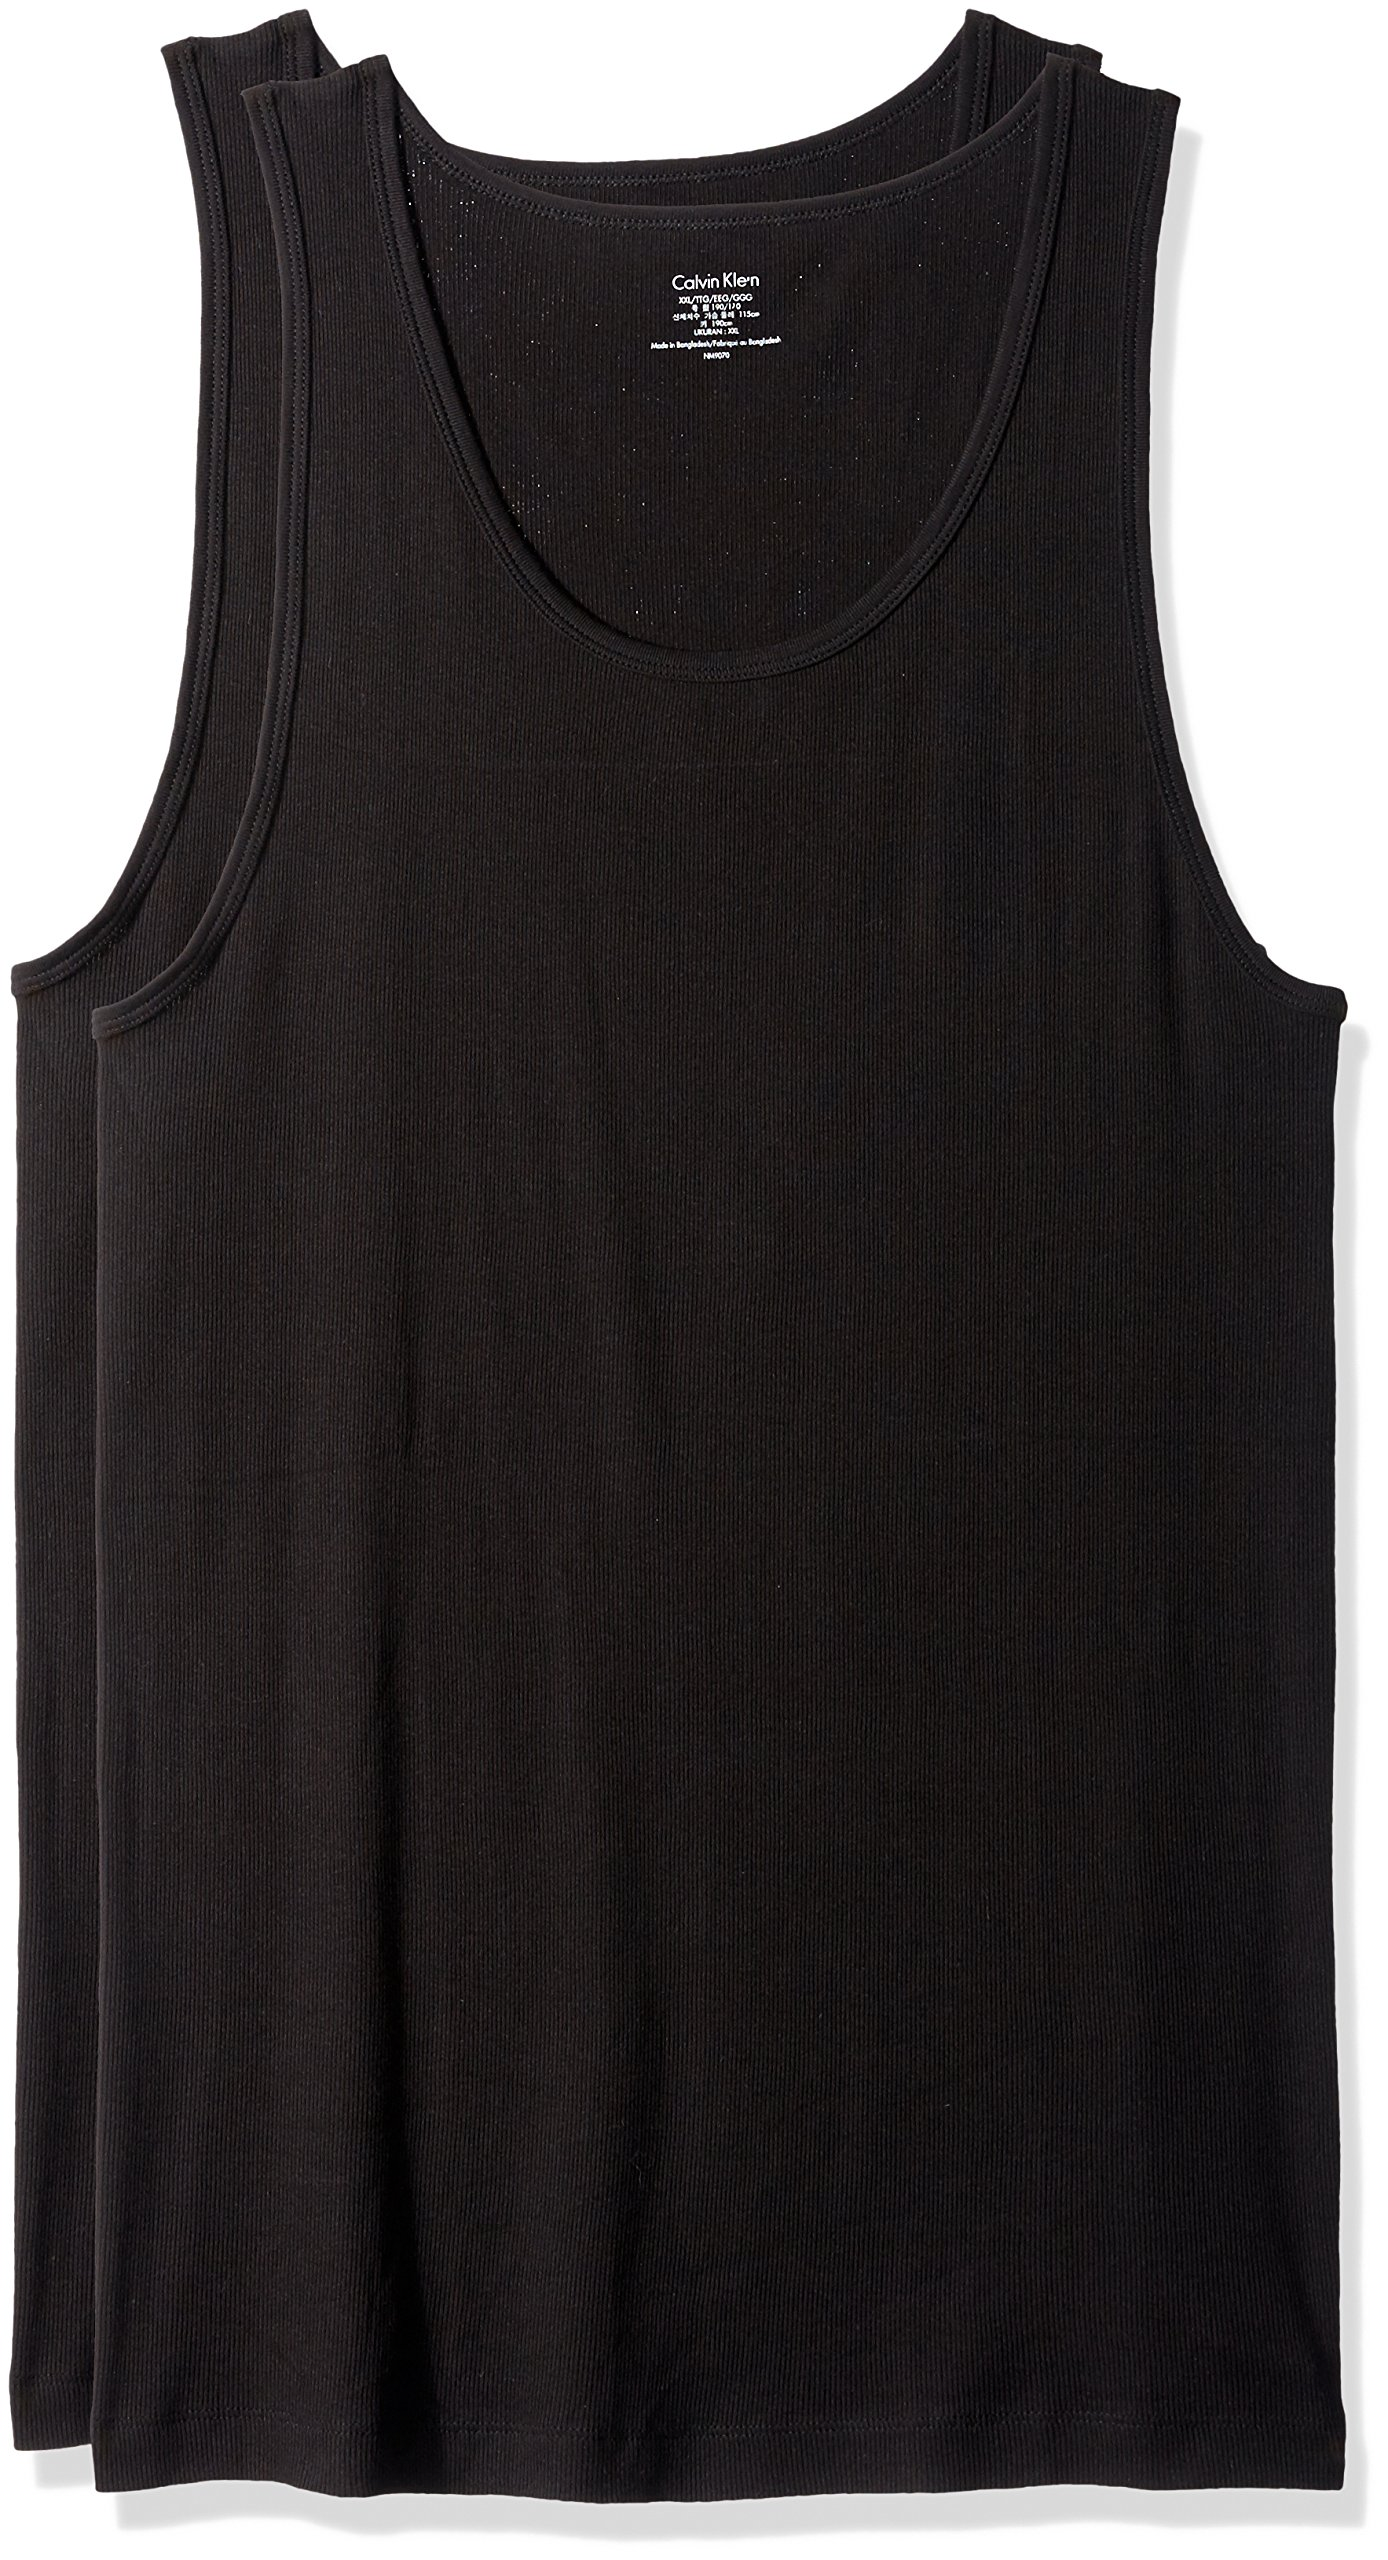 Calvin Klein Men's Cotton Classics 3 Pack Tank Tops, Black, XX-Large